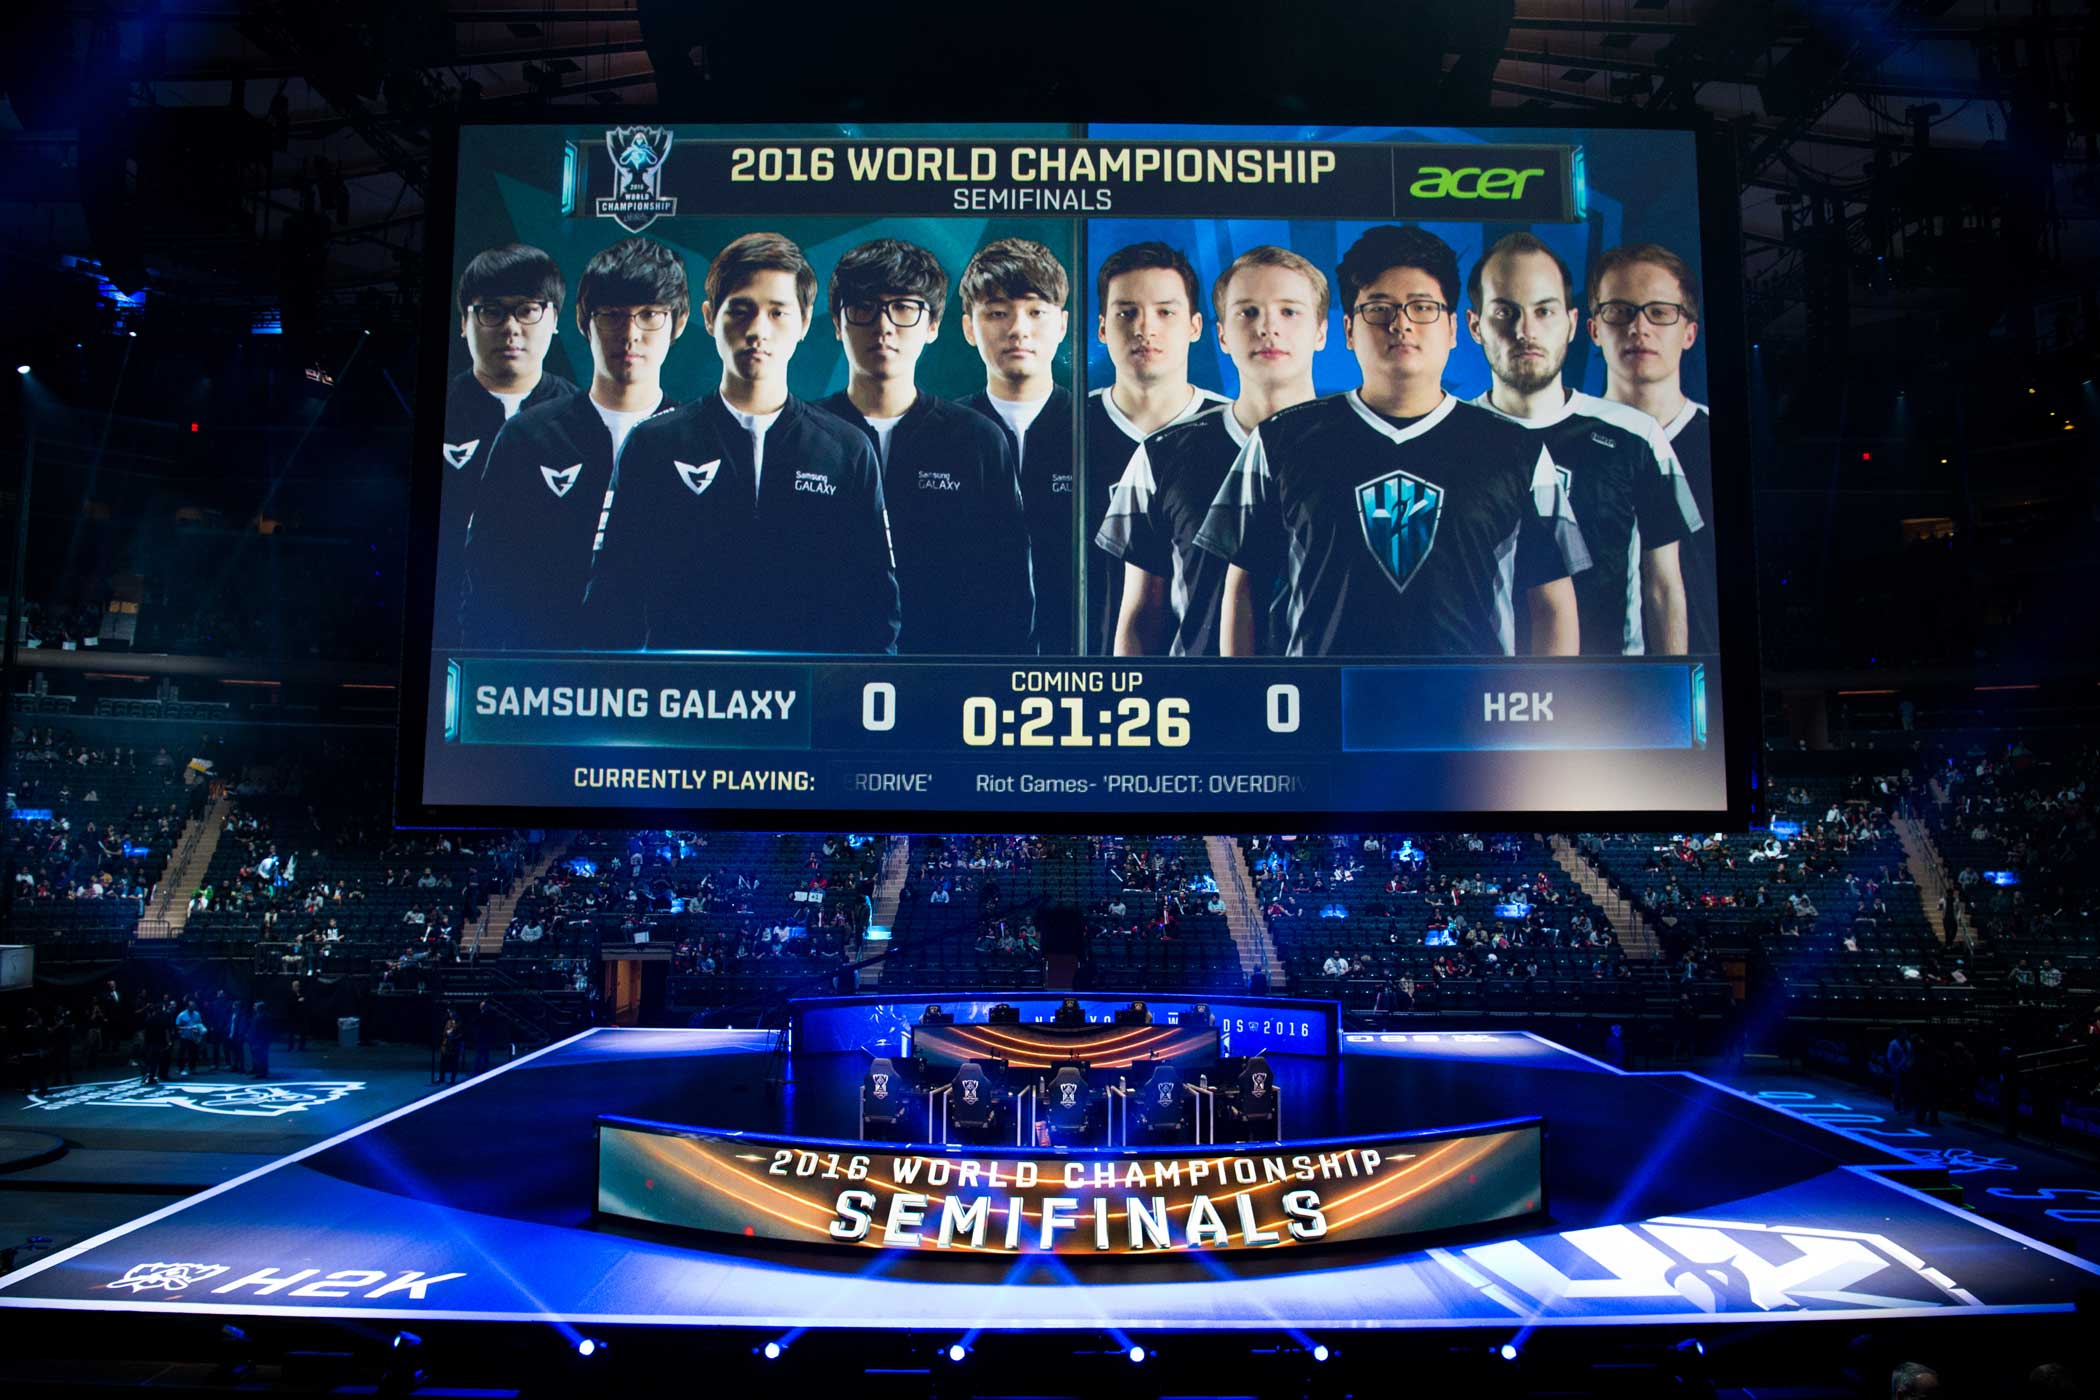 A clock counts down to the start H2K's match against the South Korean team Samsung Galaxy.